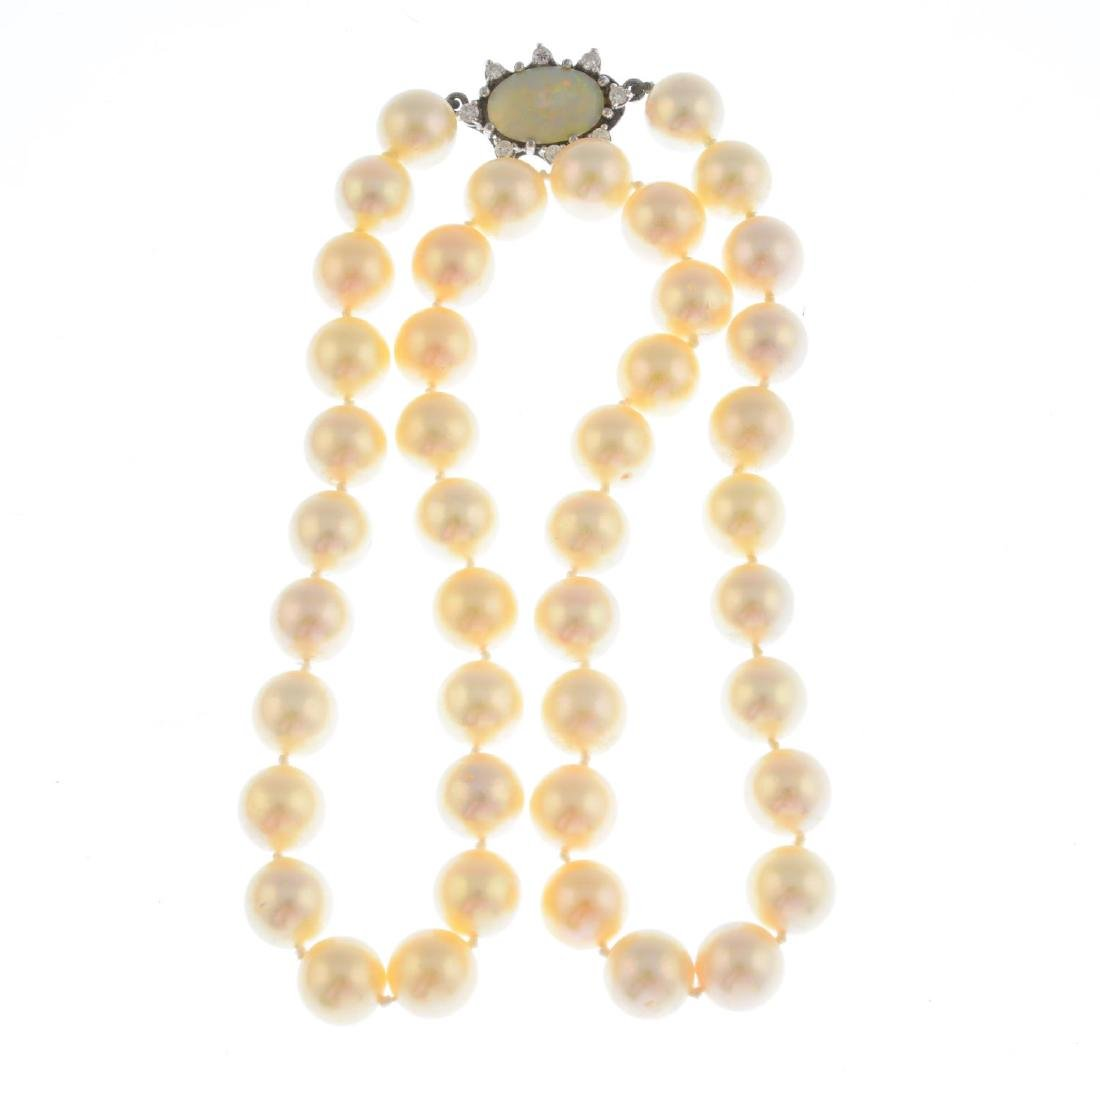 A cultured pearl single-strand necklace. Comprising - 2